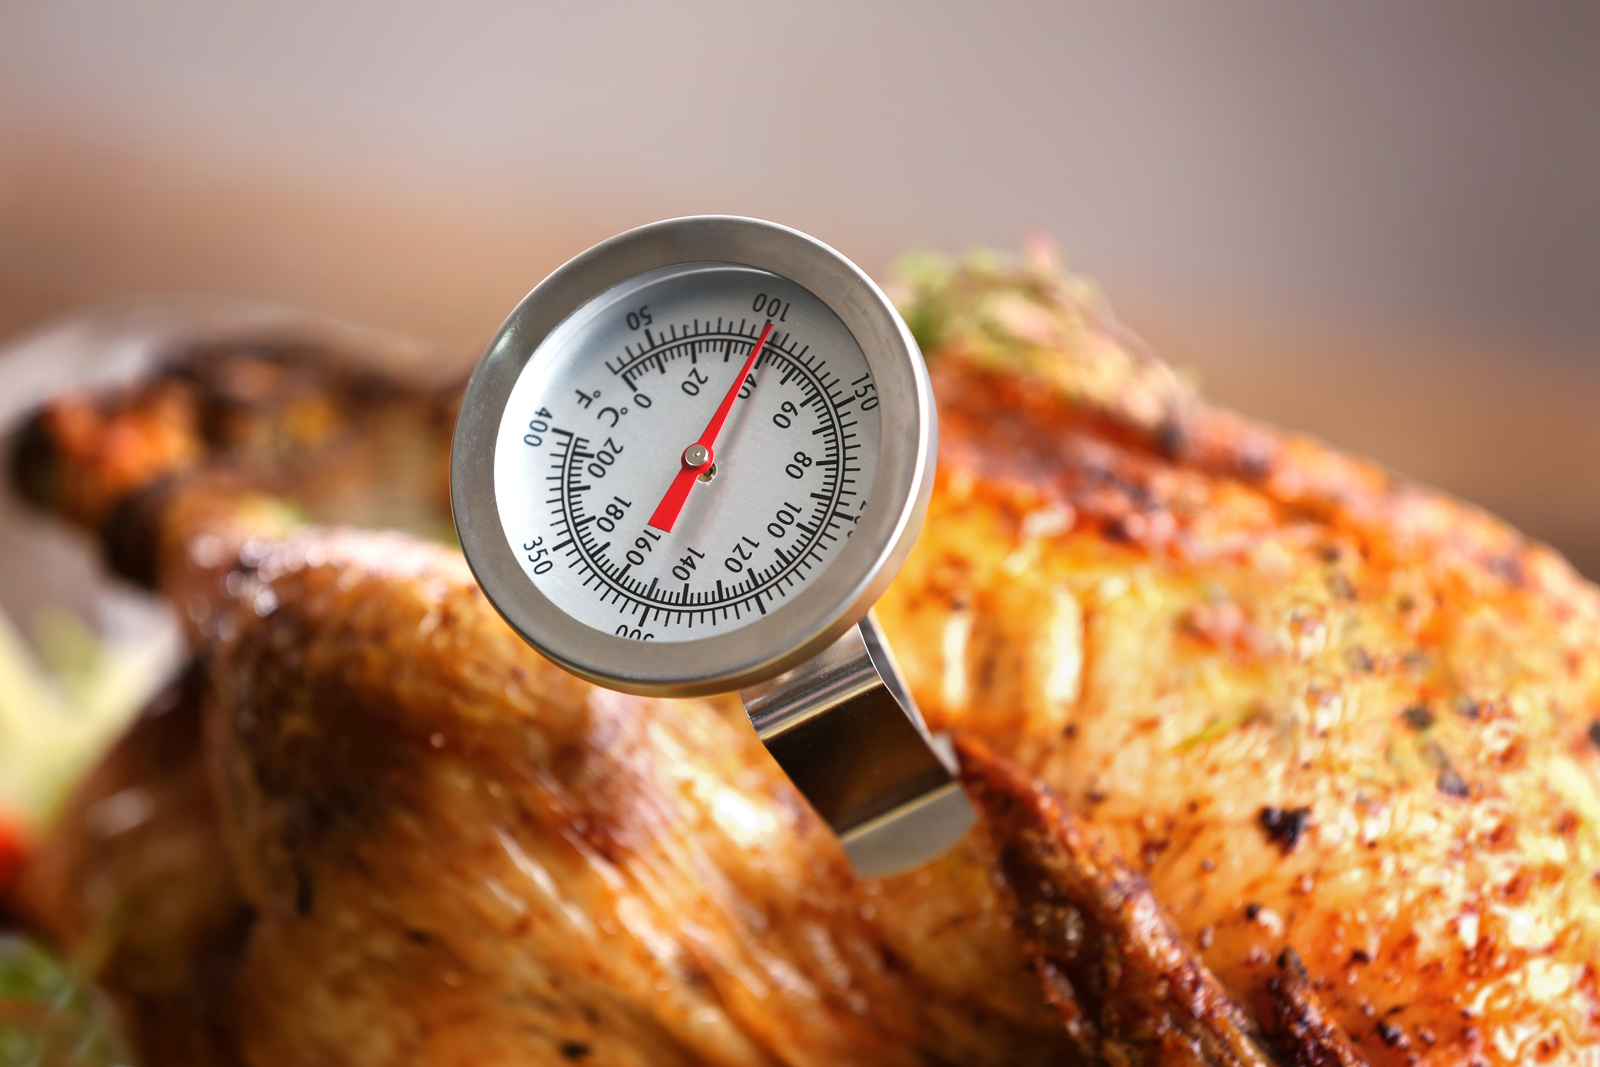 Roasted turkey with a food thermometer measuring internal temperature.